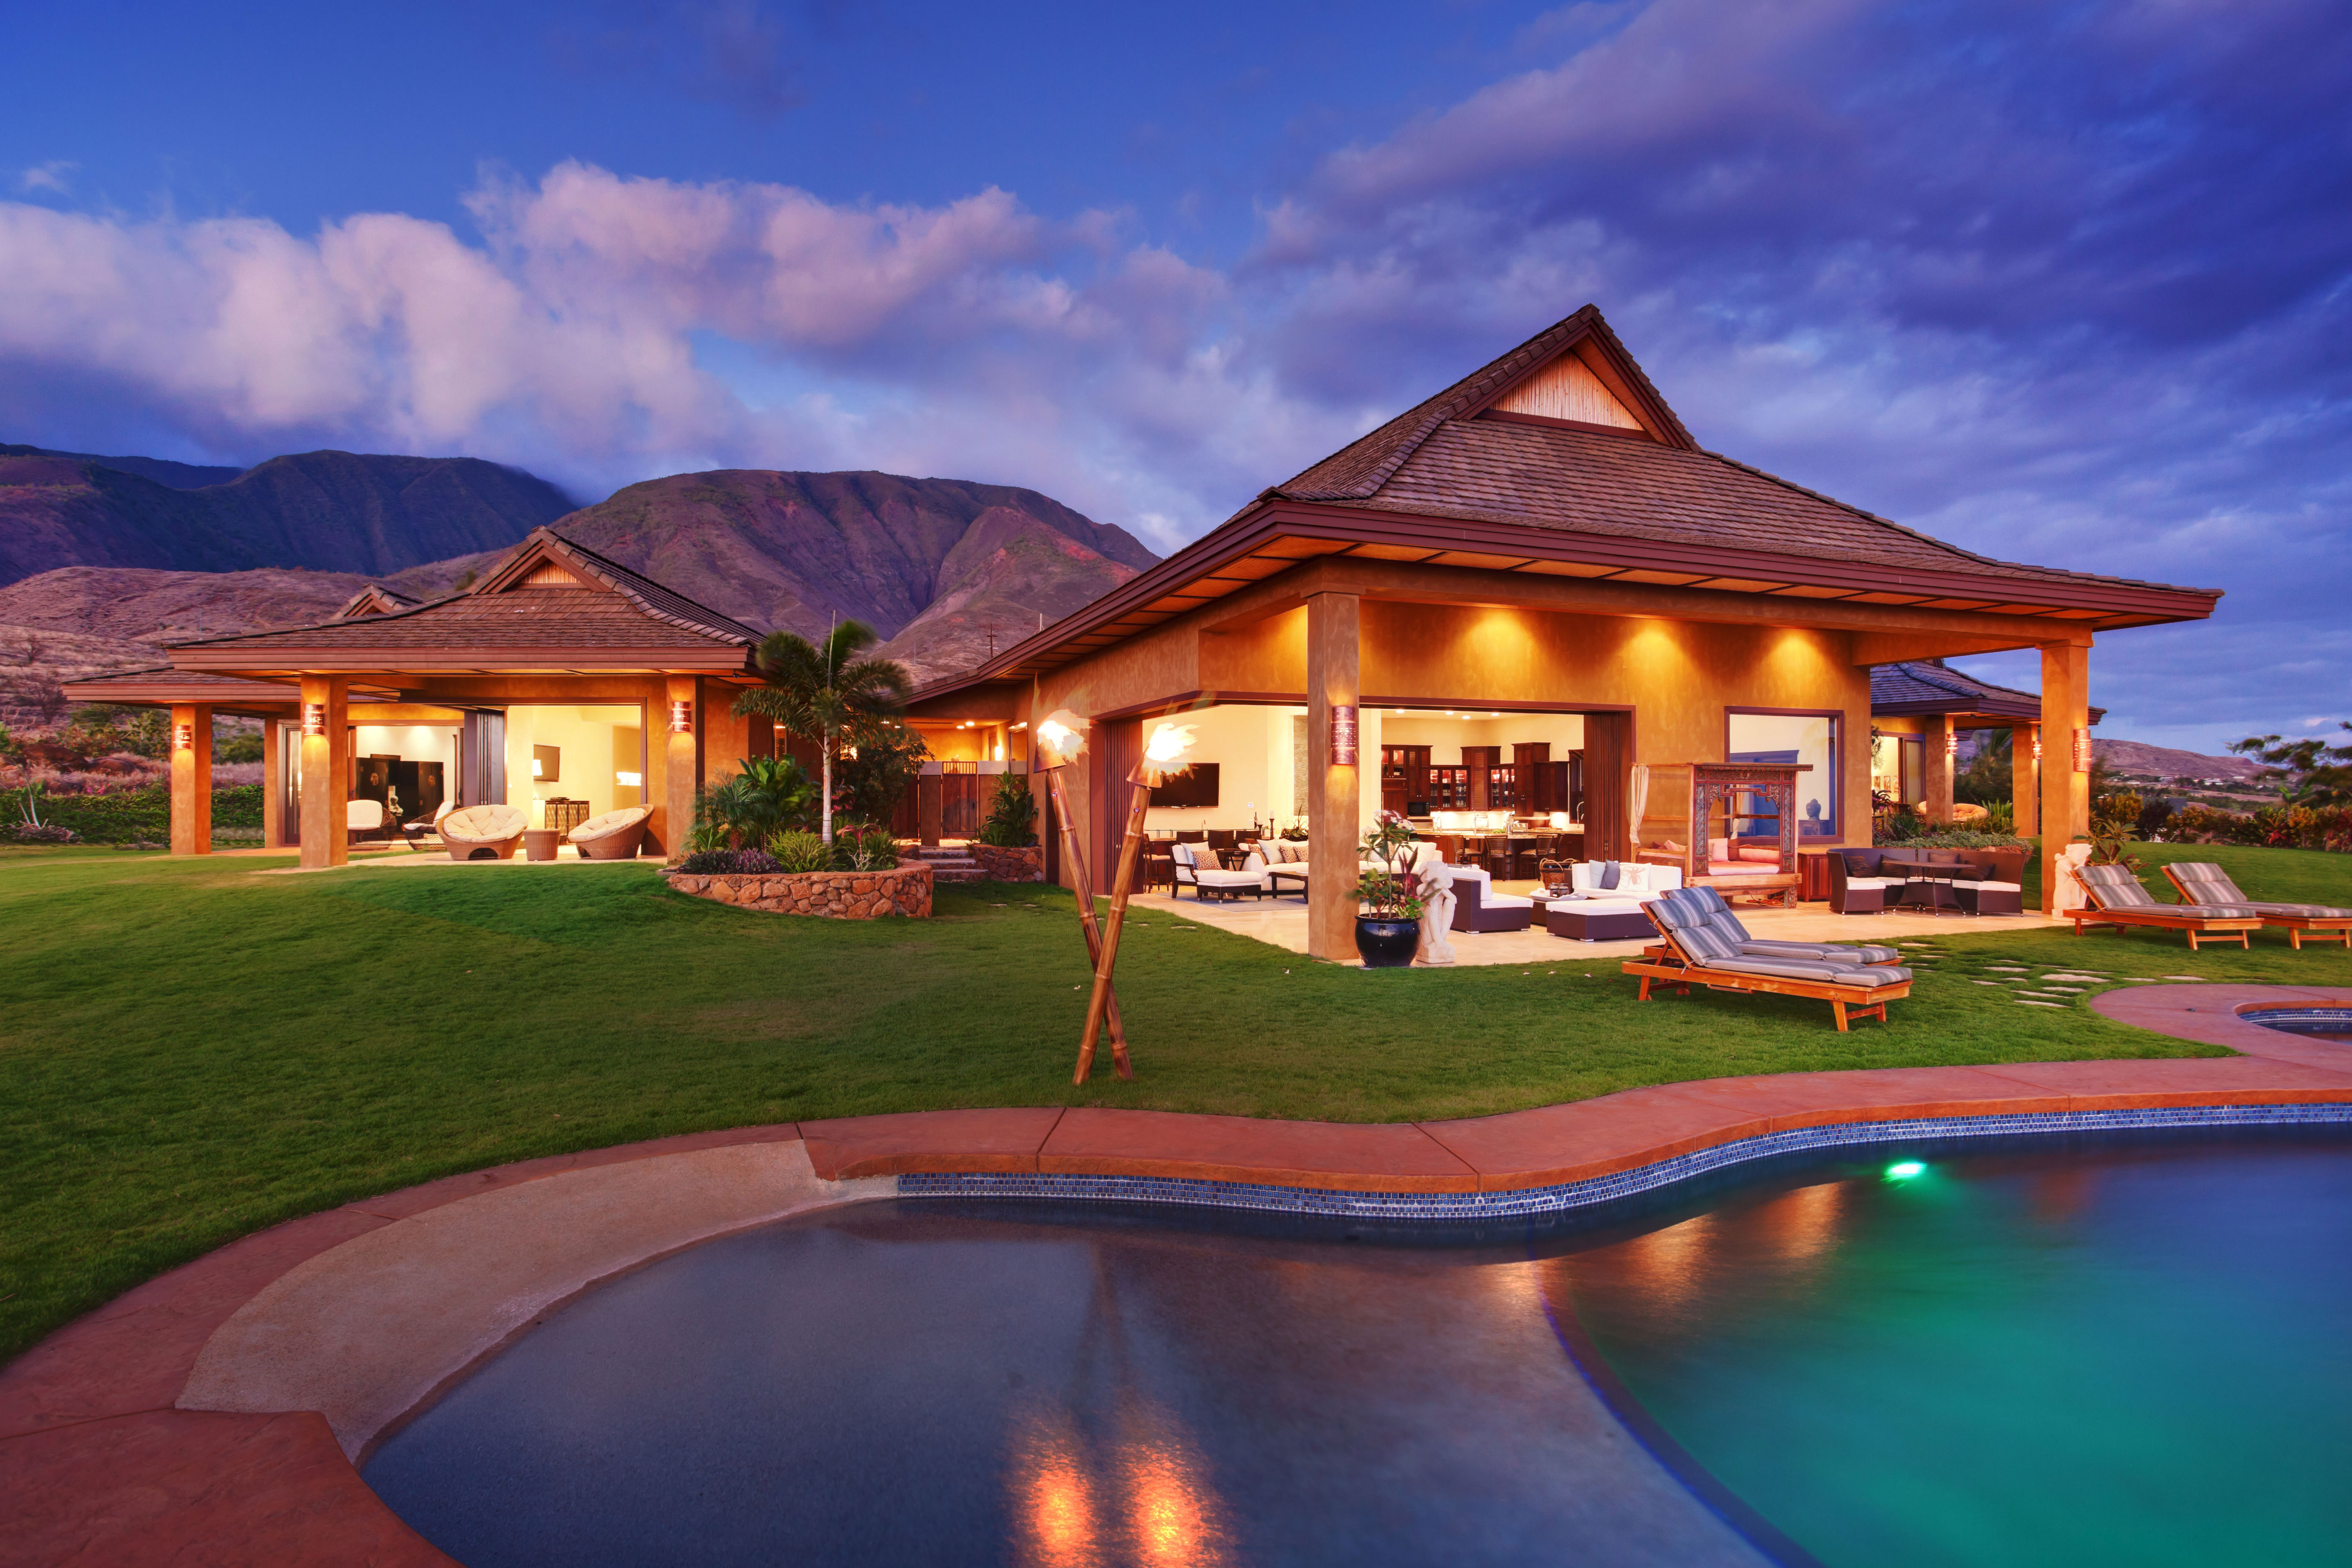 CORRECTING and REPLACING Vakast Launches First Online Luxury Rental  Platform for World's Finest Vacation Homes and Private Jet Services |  Business Wire